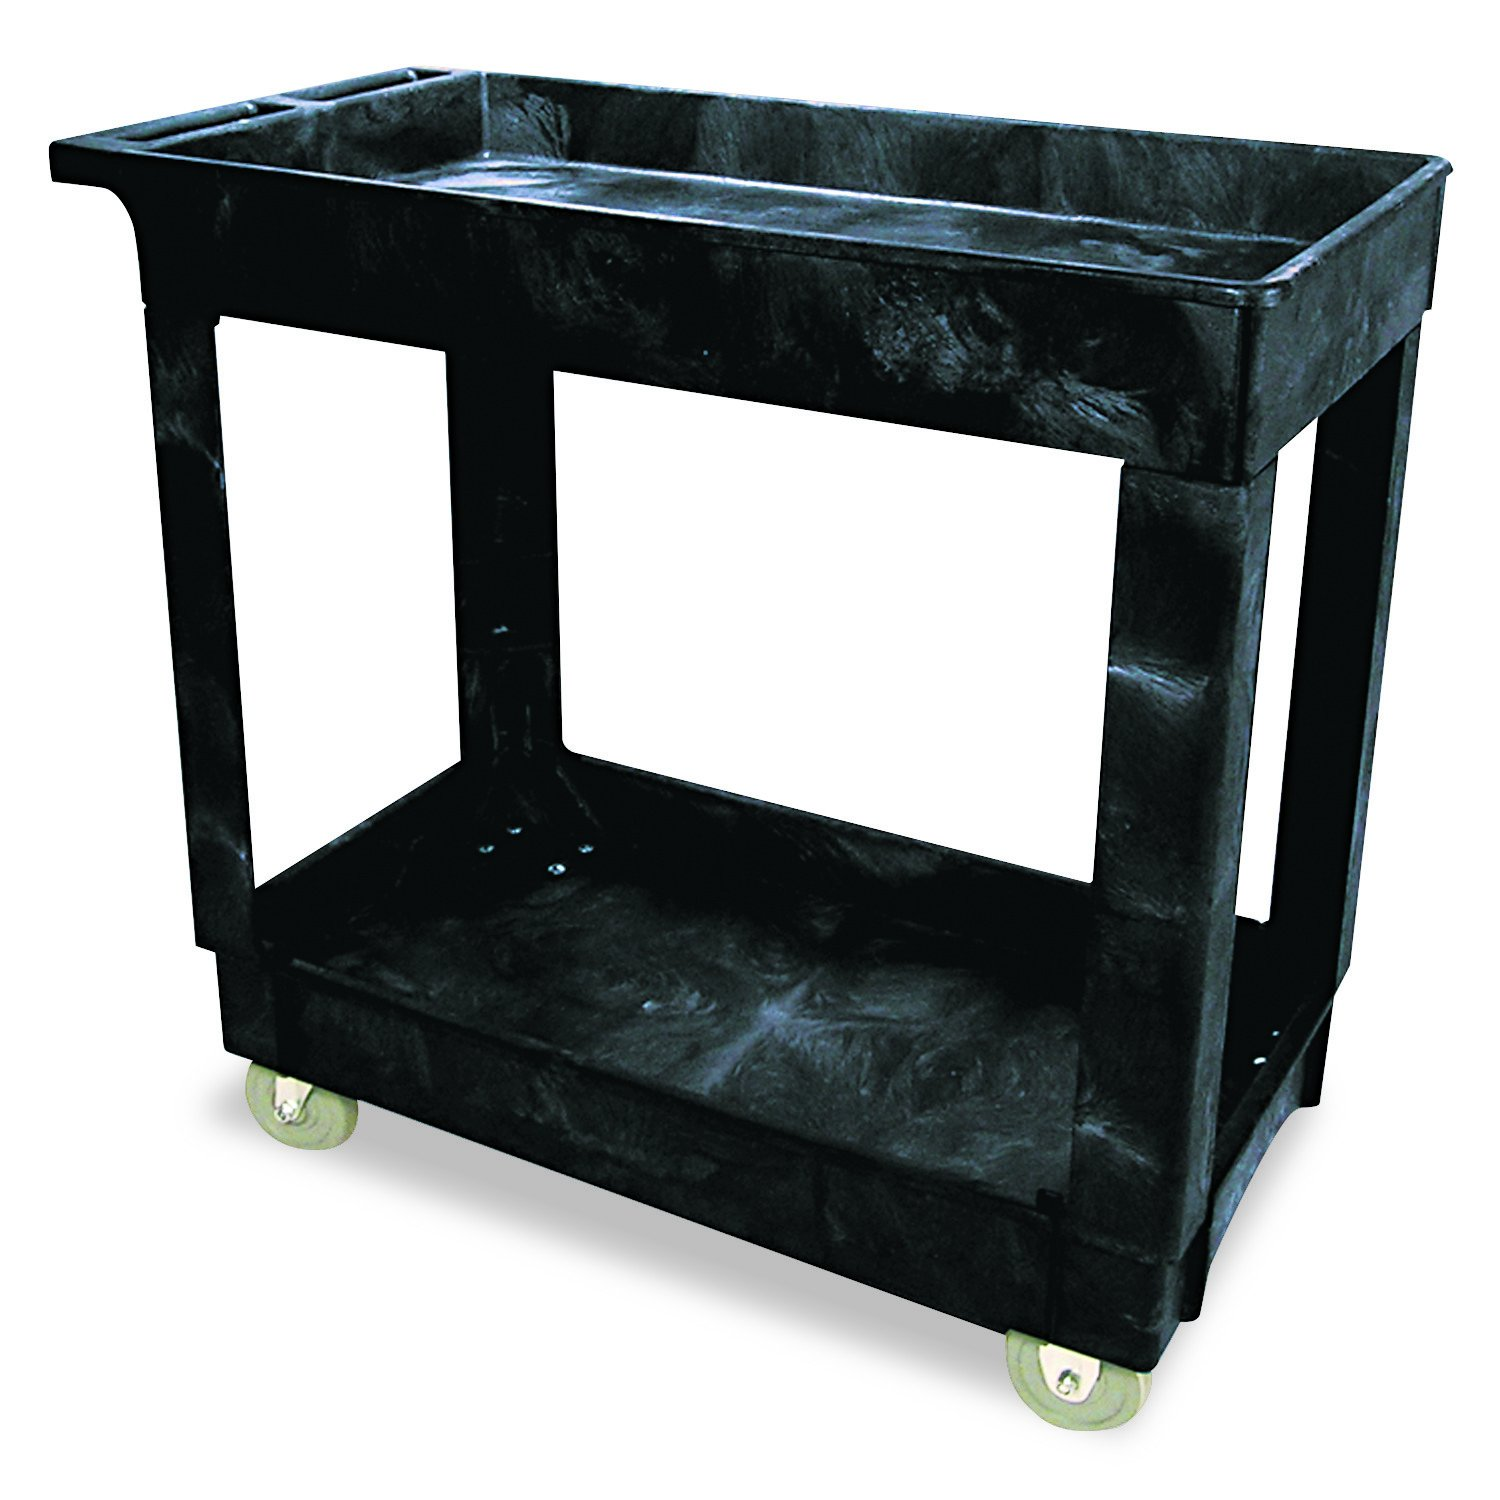 Rubbermaid Commercial  Service/Utility Cart, Two-Shelf, 300 lb capactiy, Black (FG9T6600BLA)